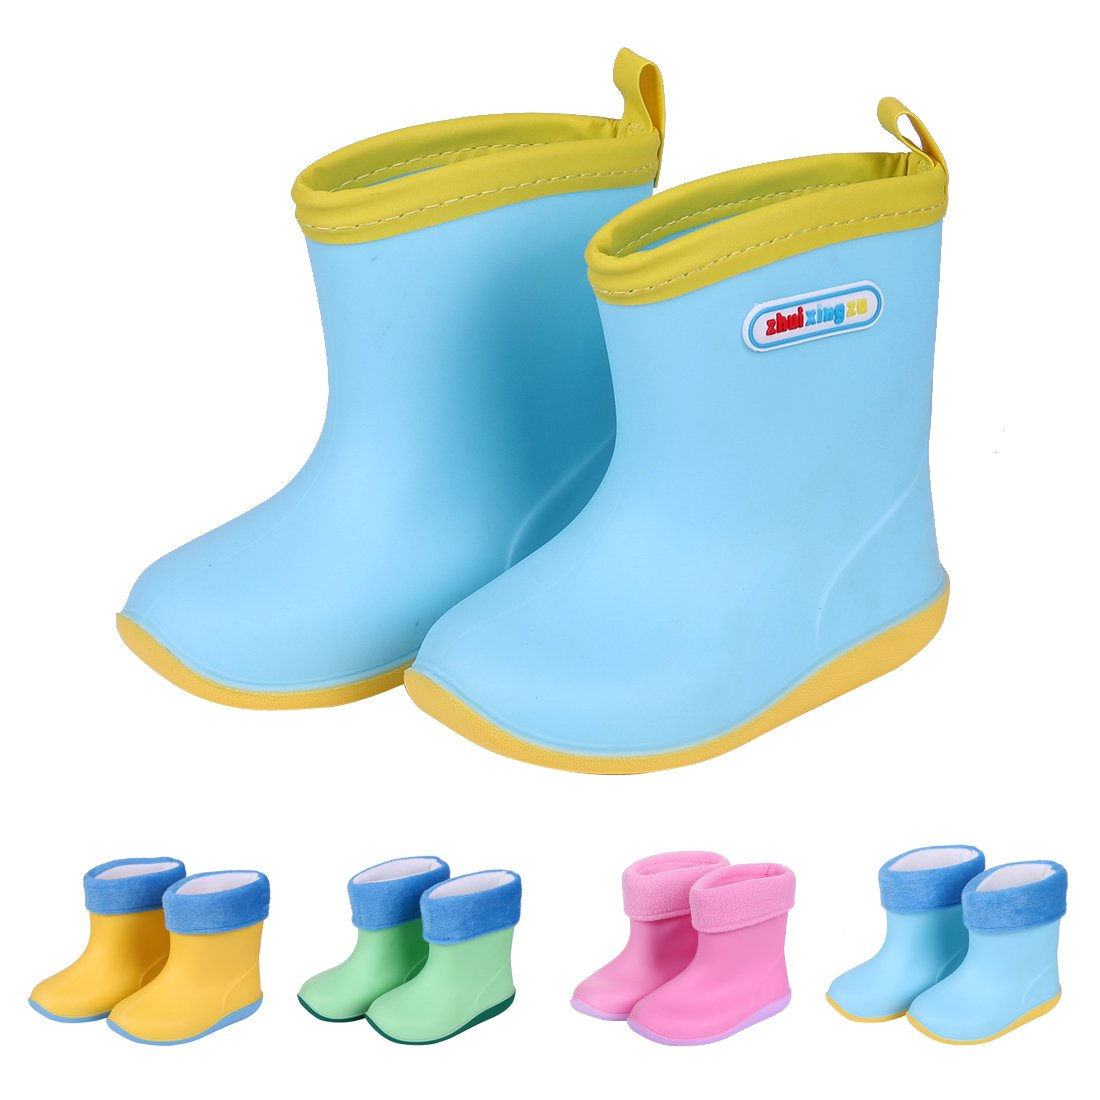 Asgard Cute Rain Boots for Kids Waterproof Candy Color Ankel Rubber Boots, with Warm Cosy Soft Socks B16 by Asgard (Image #1)